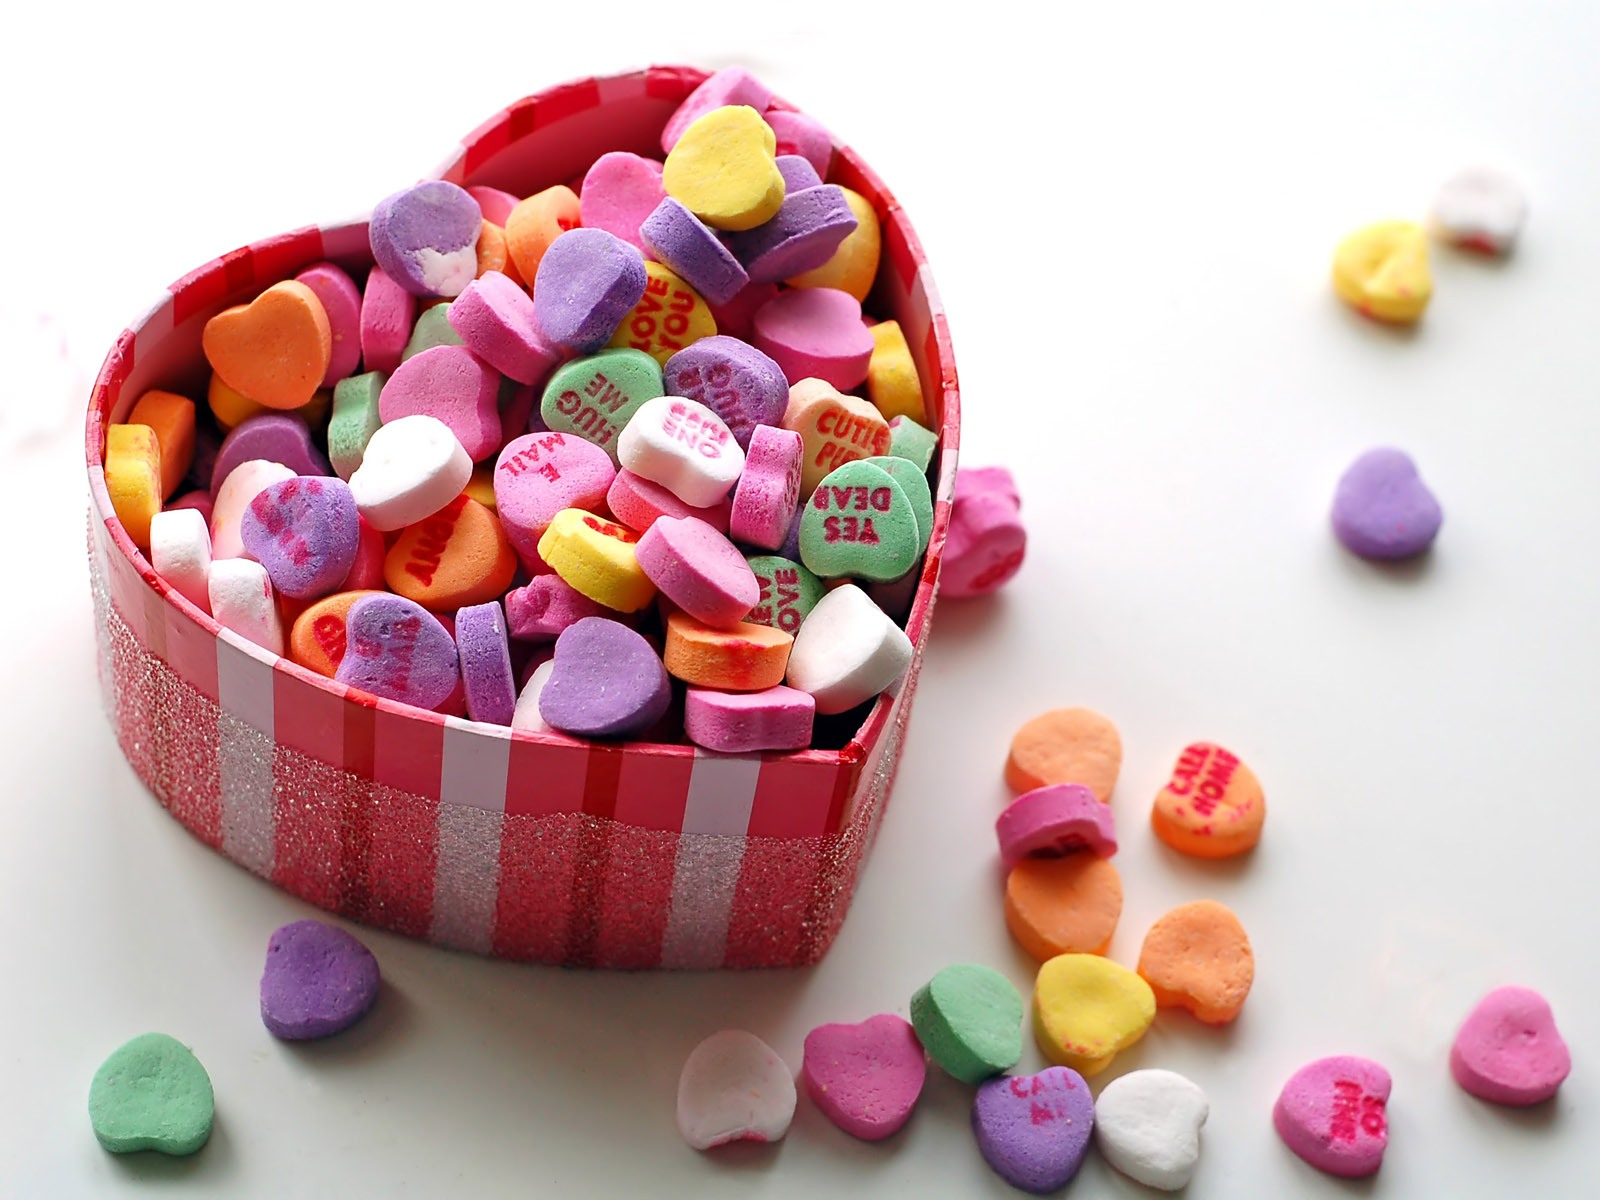 24 Incredibly Beautiful Valentines Day Desktop Wallpapers Web Design 1600x1200